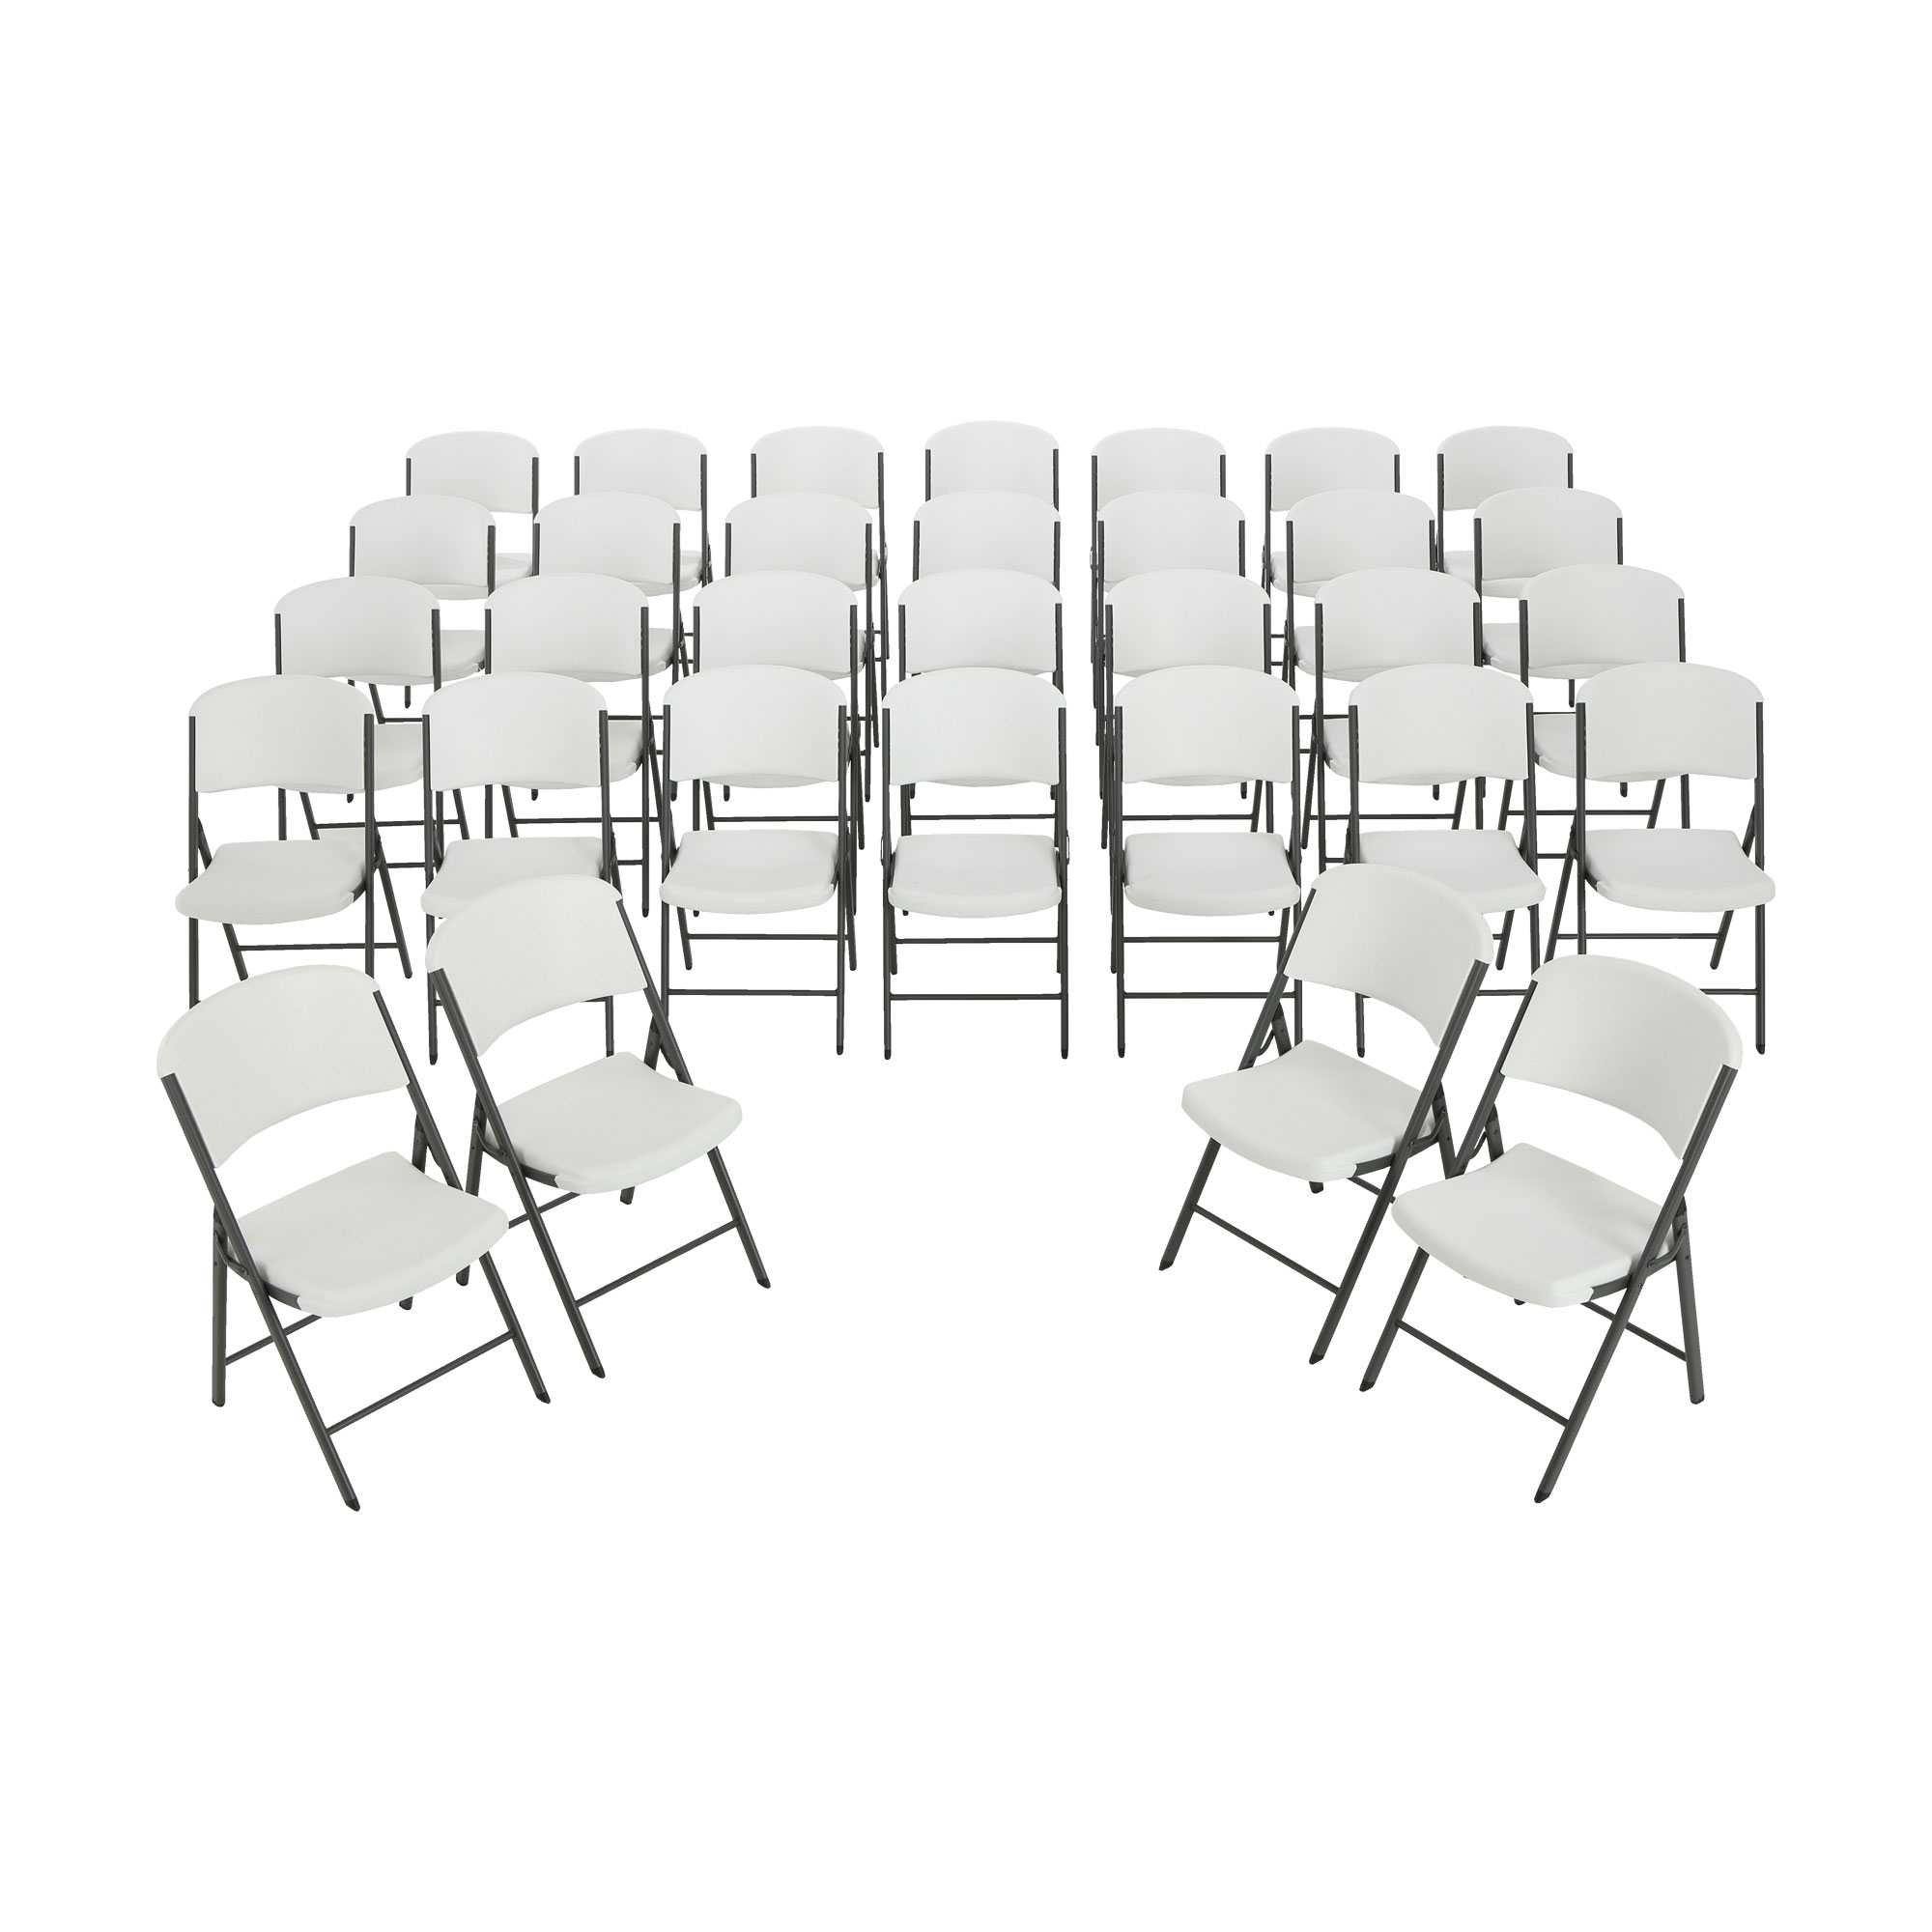 Lifetime Folding Chairs 2802 White Granite Color Plastic 32 Pack